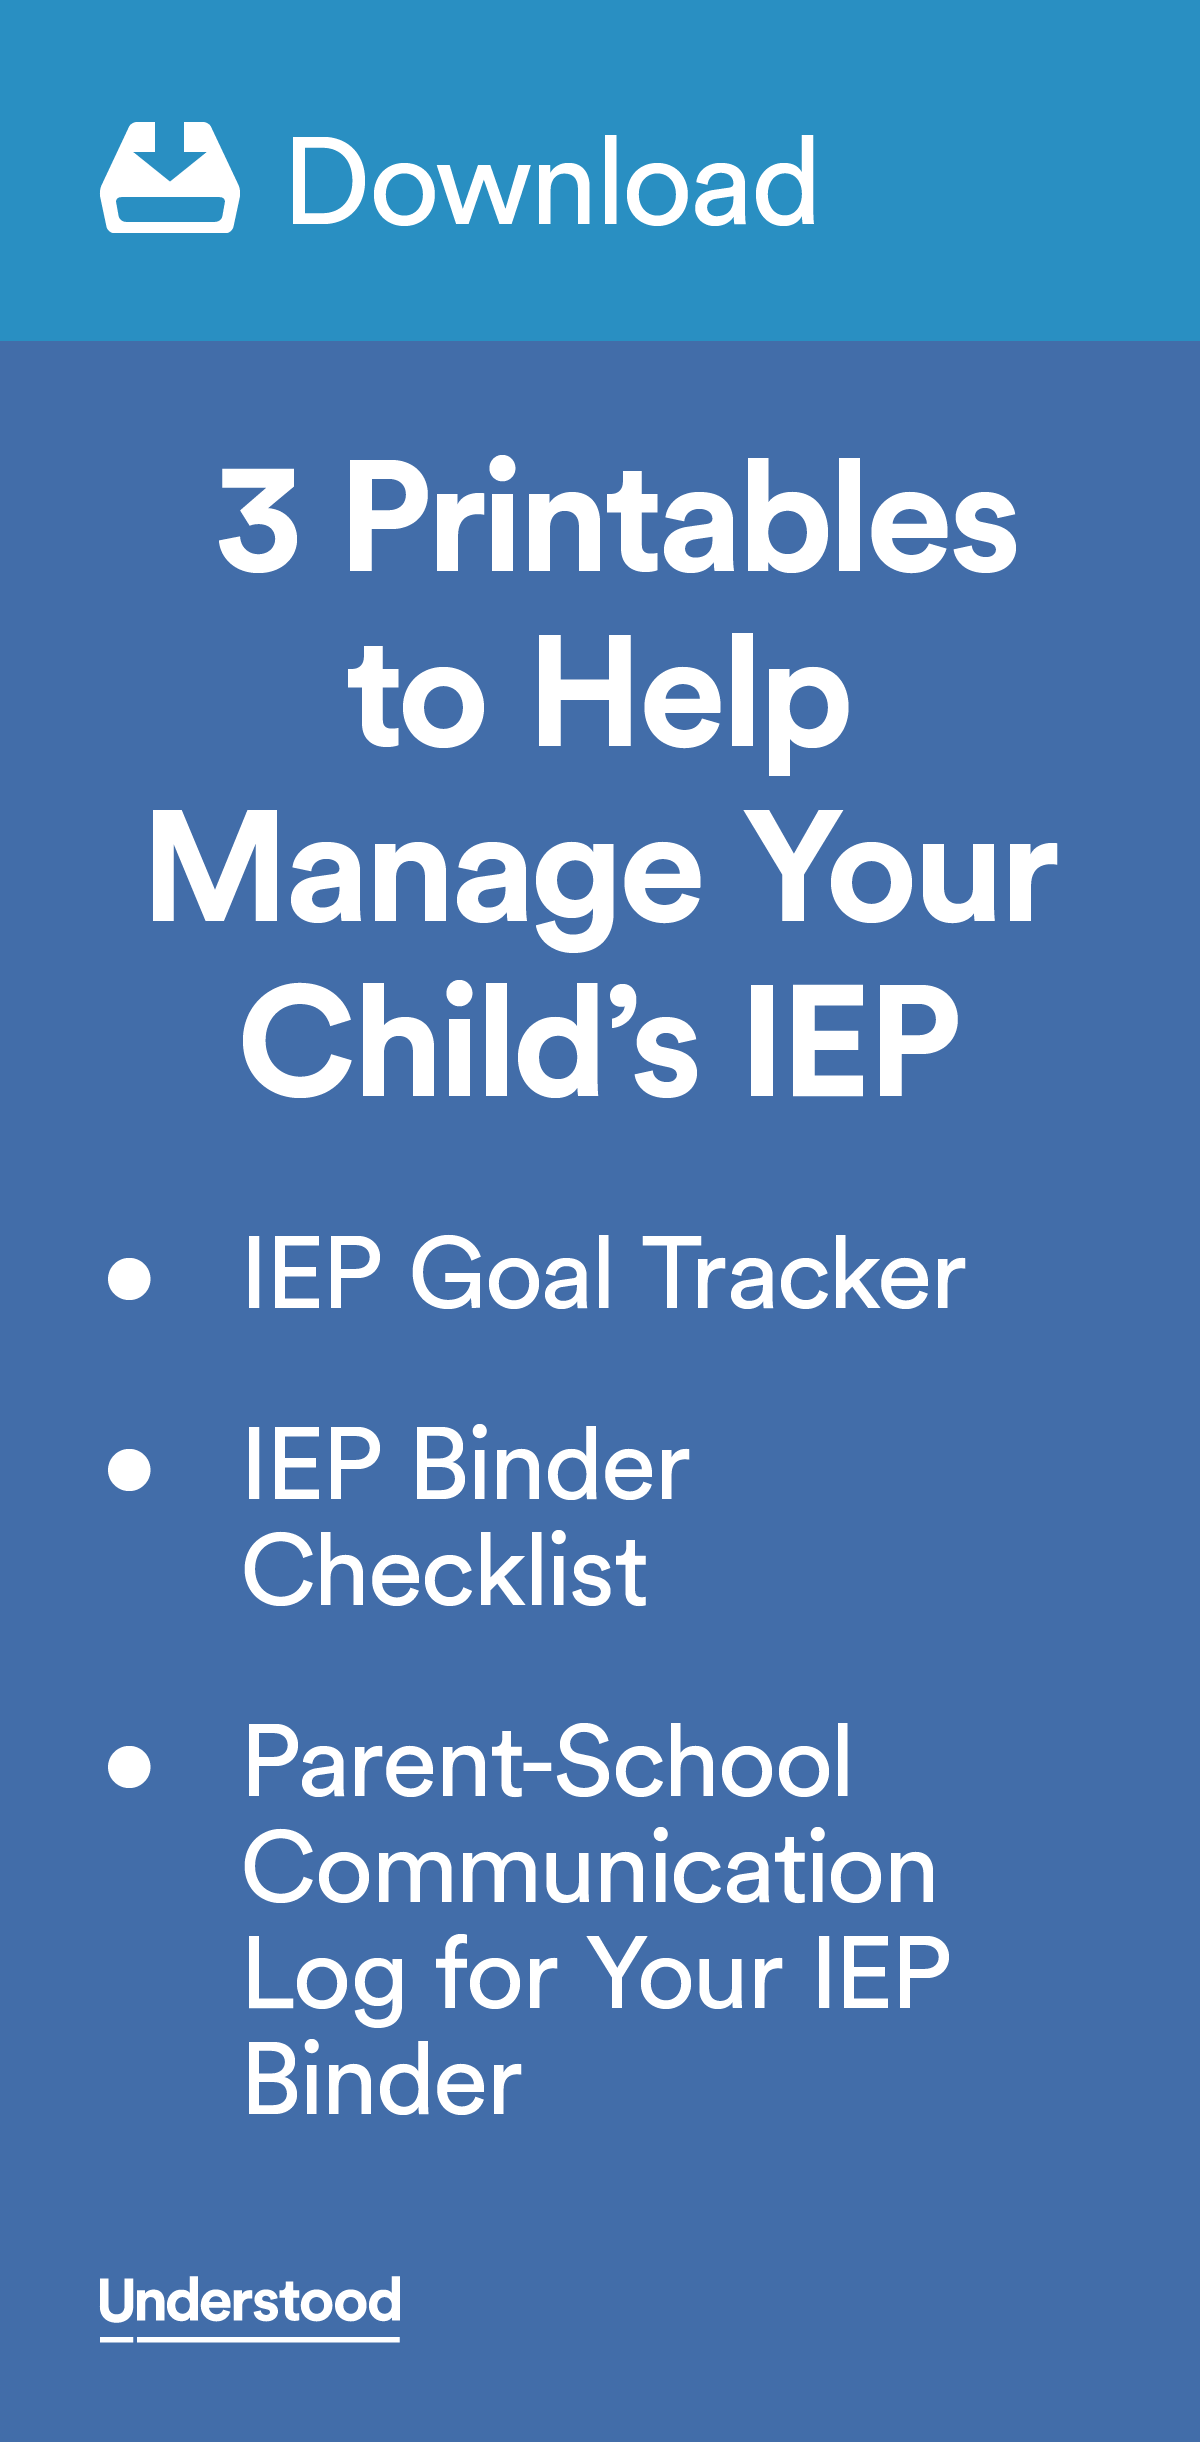 Printable Downloads to Help Manage Your Child\'s IEP | Pinterest ...